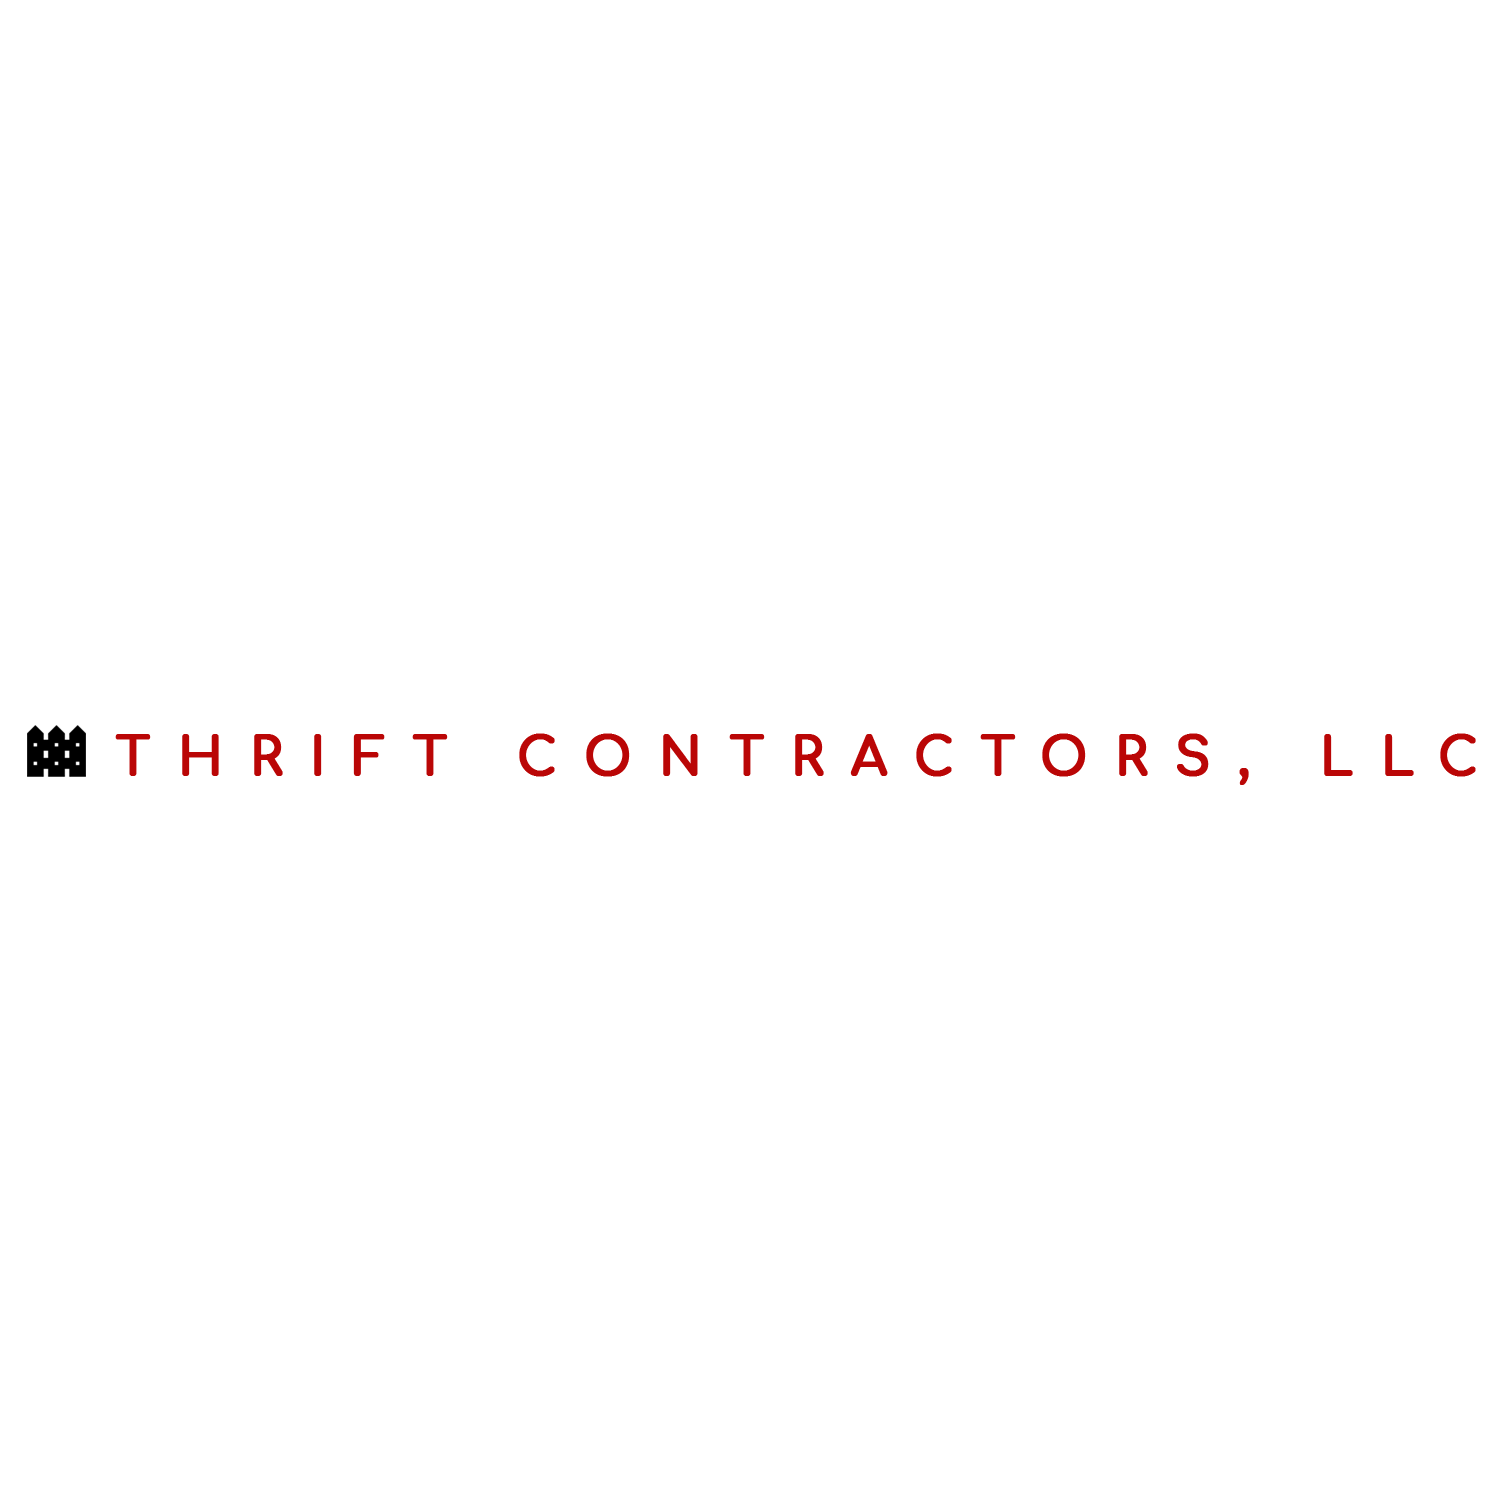 Thrift Contractors, LLC - Mershon, GA 31551 - (912)449-2696 | ShowMeLocal.com